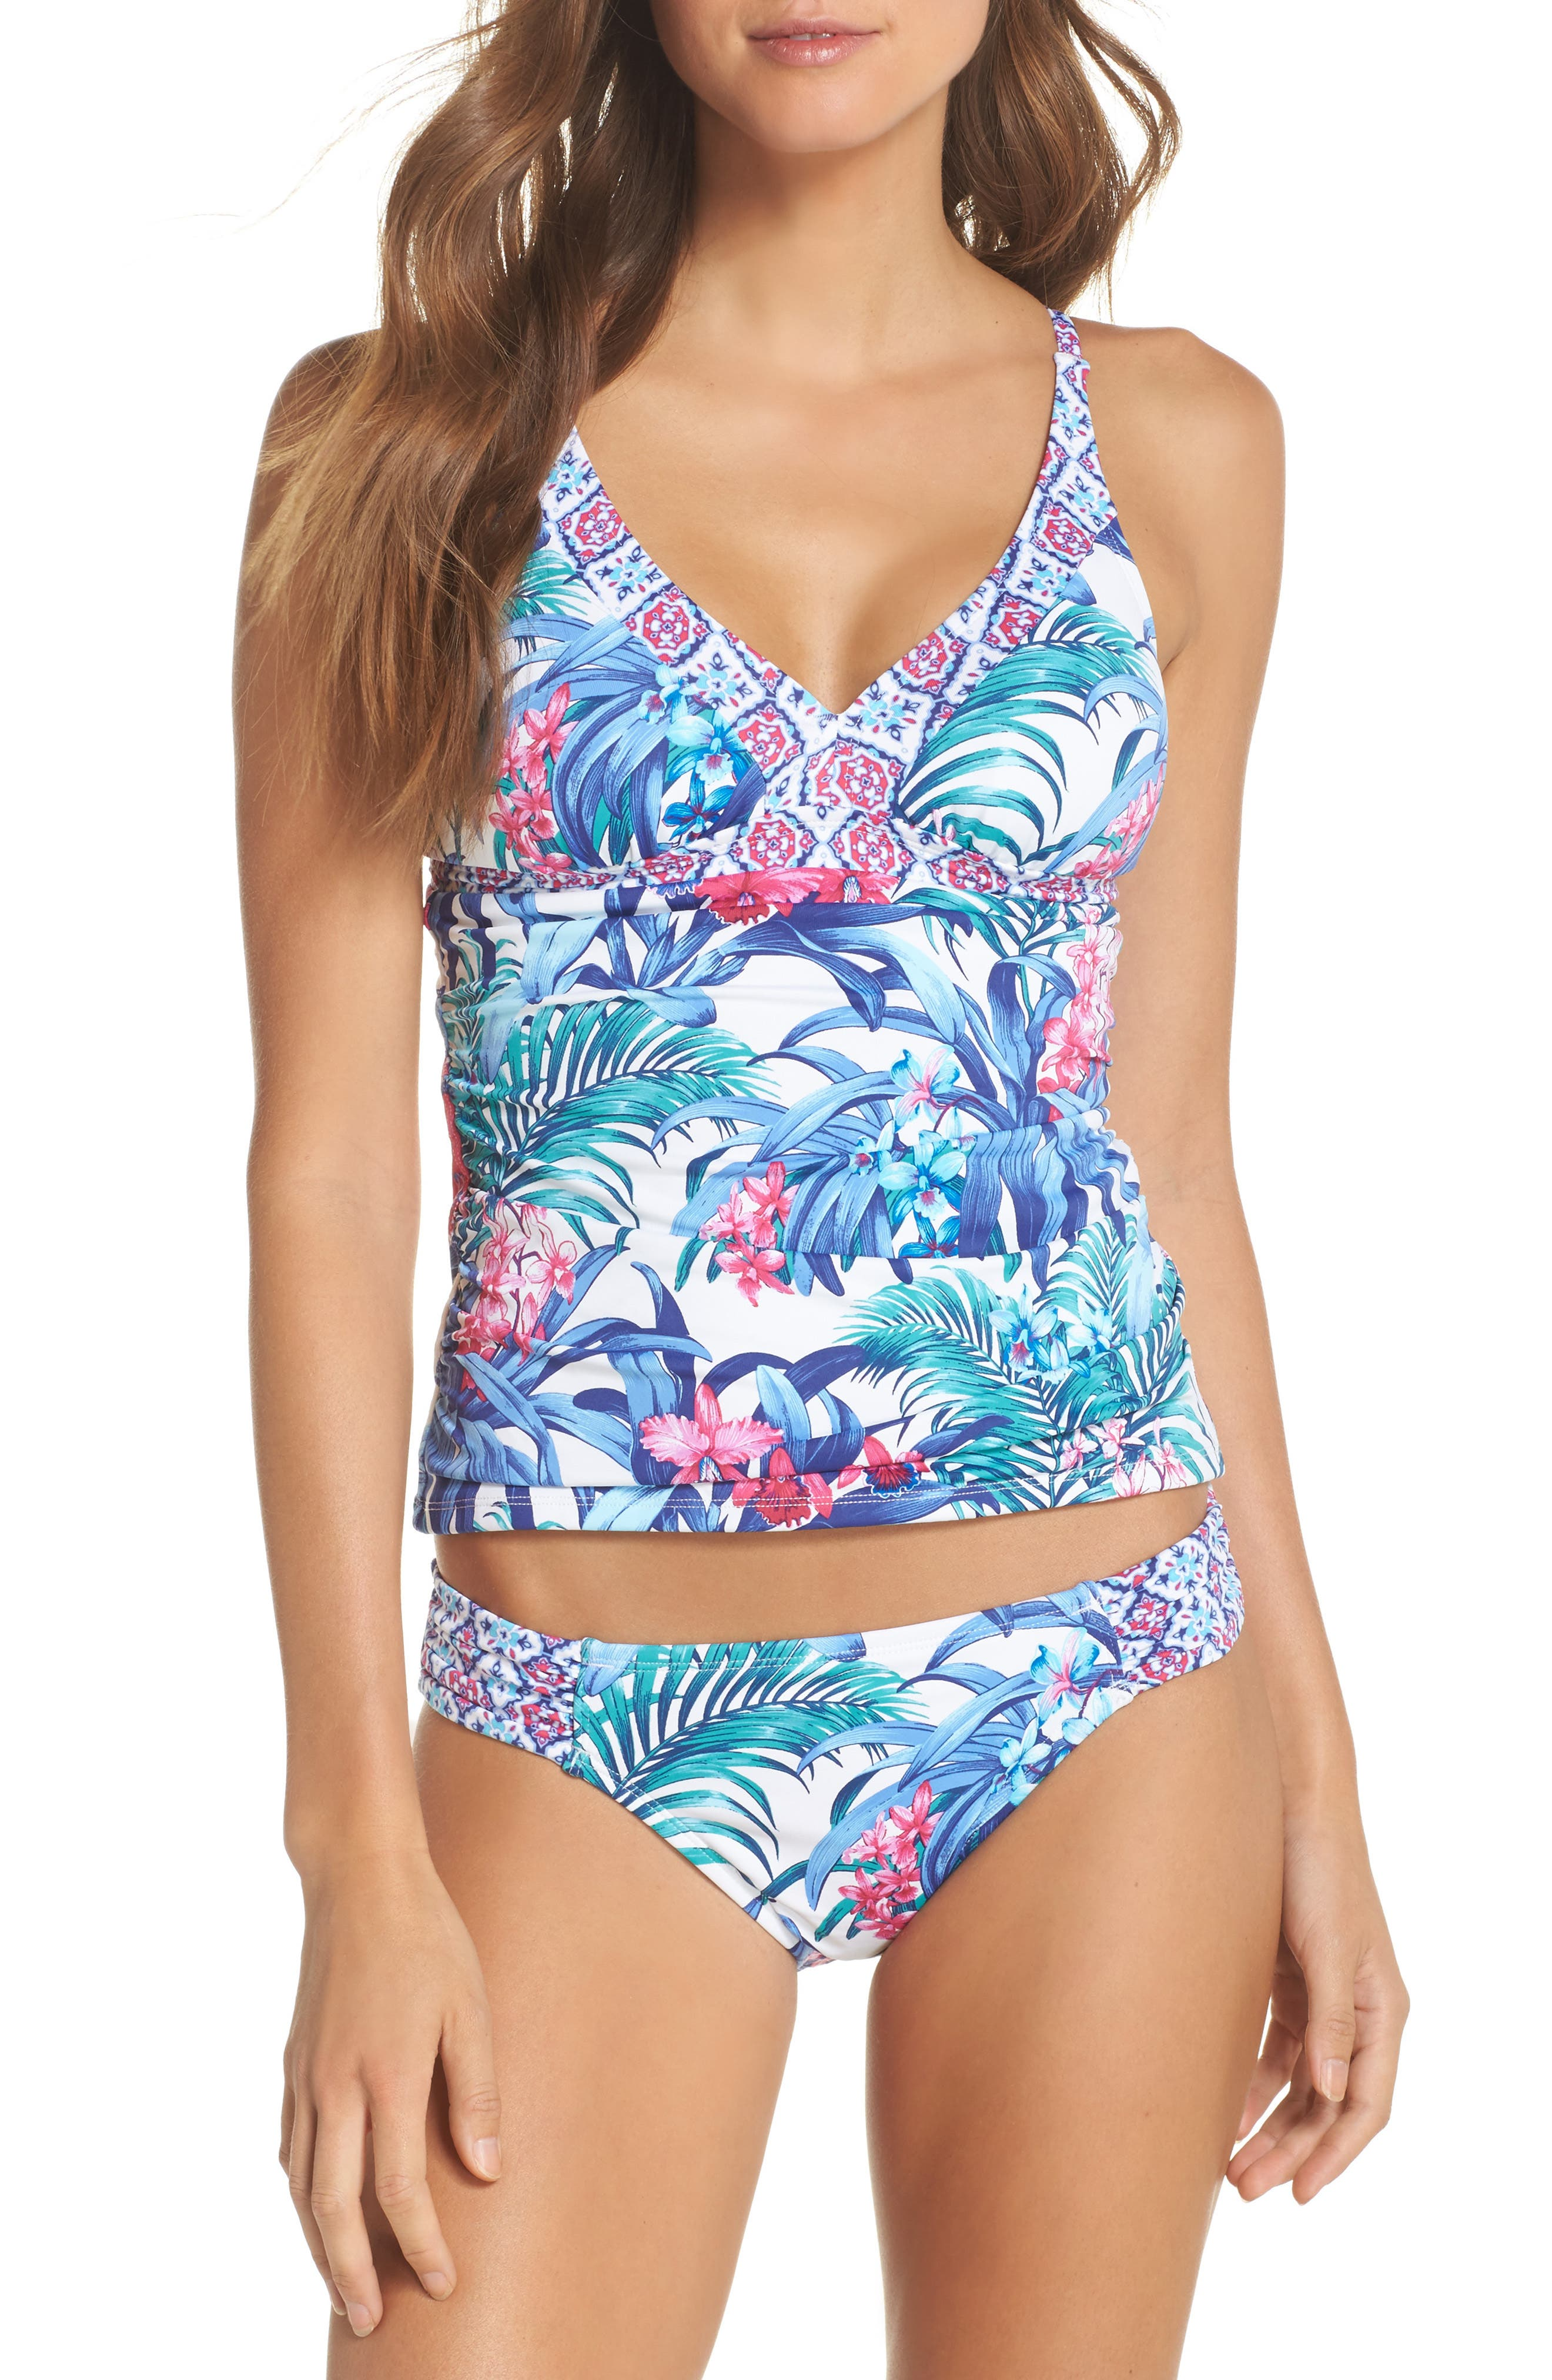 Majorelle Tankini Top,                             Alternate thumbnail 7, color,                             100